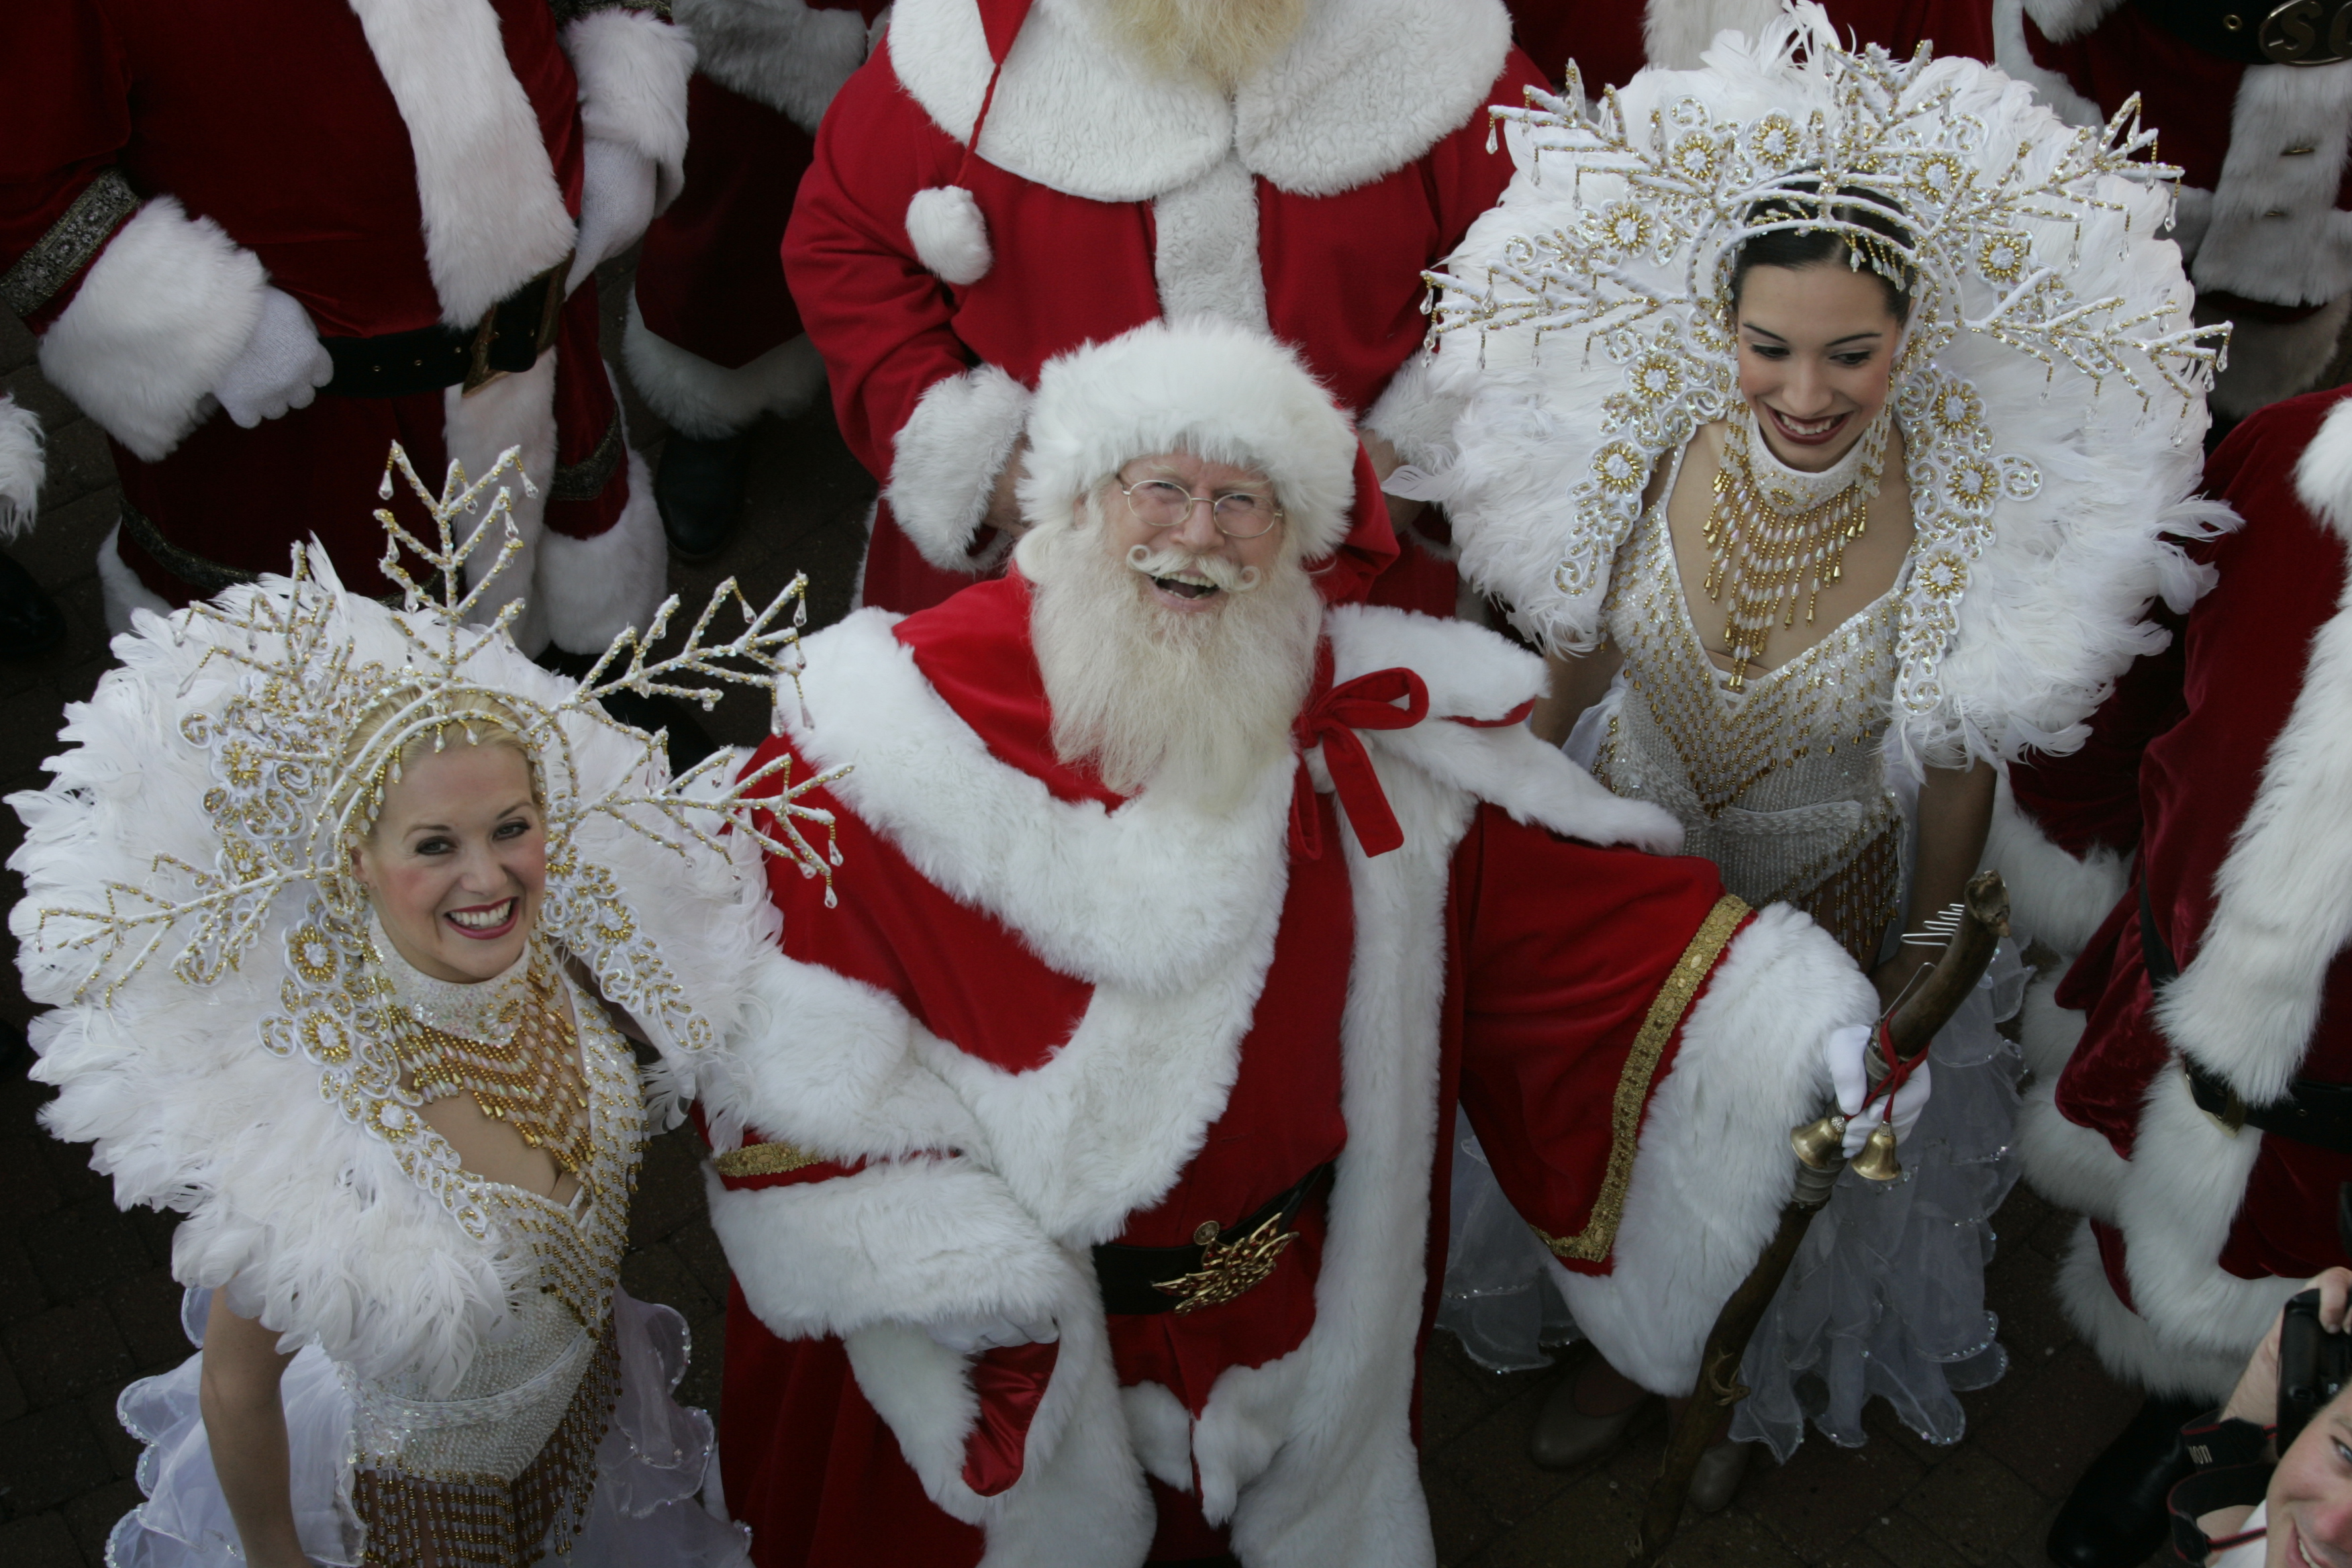 Parade with Dancers - USA Today